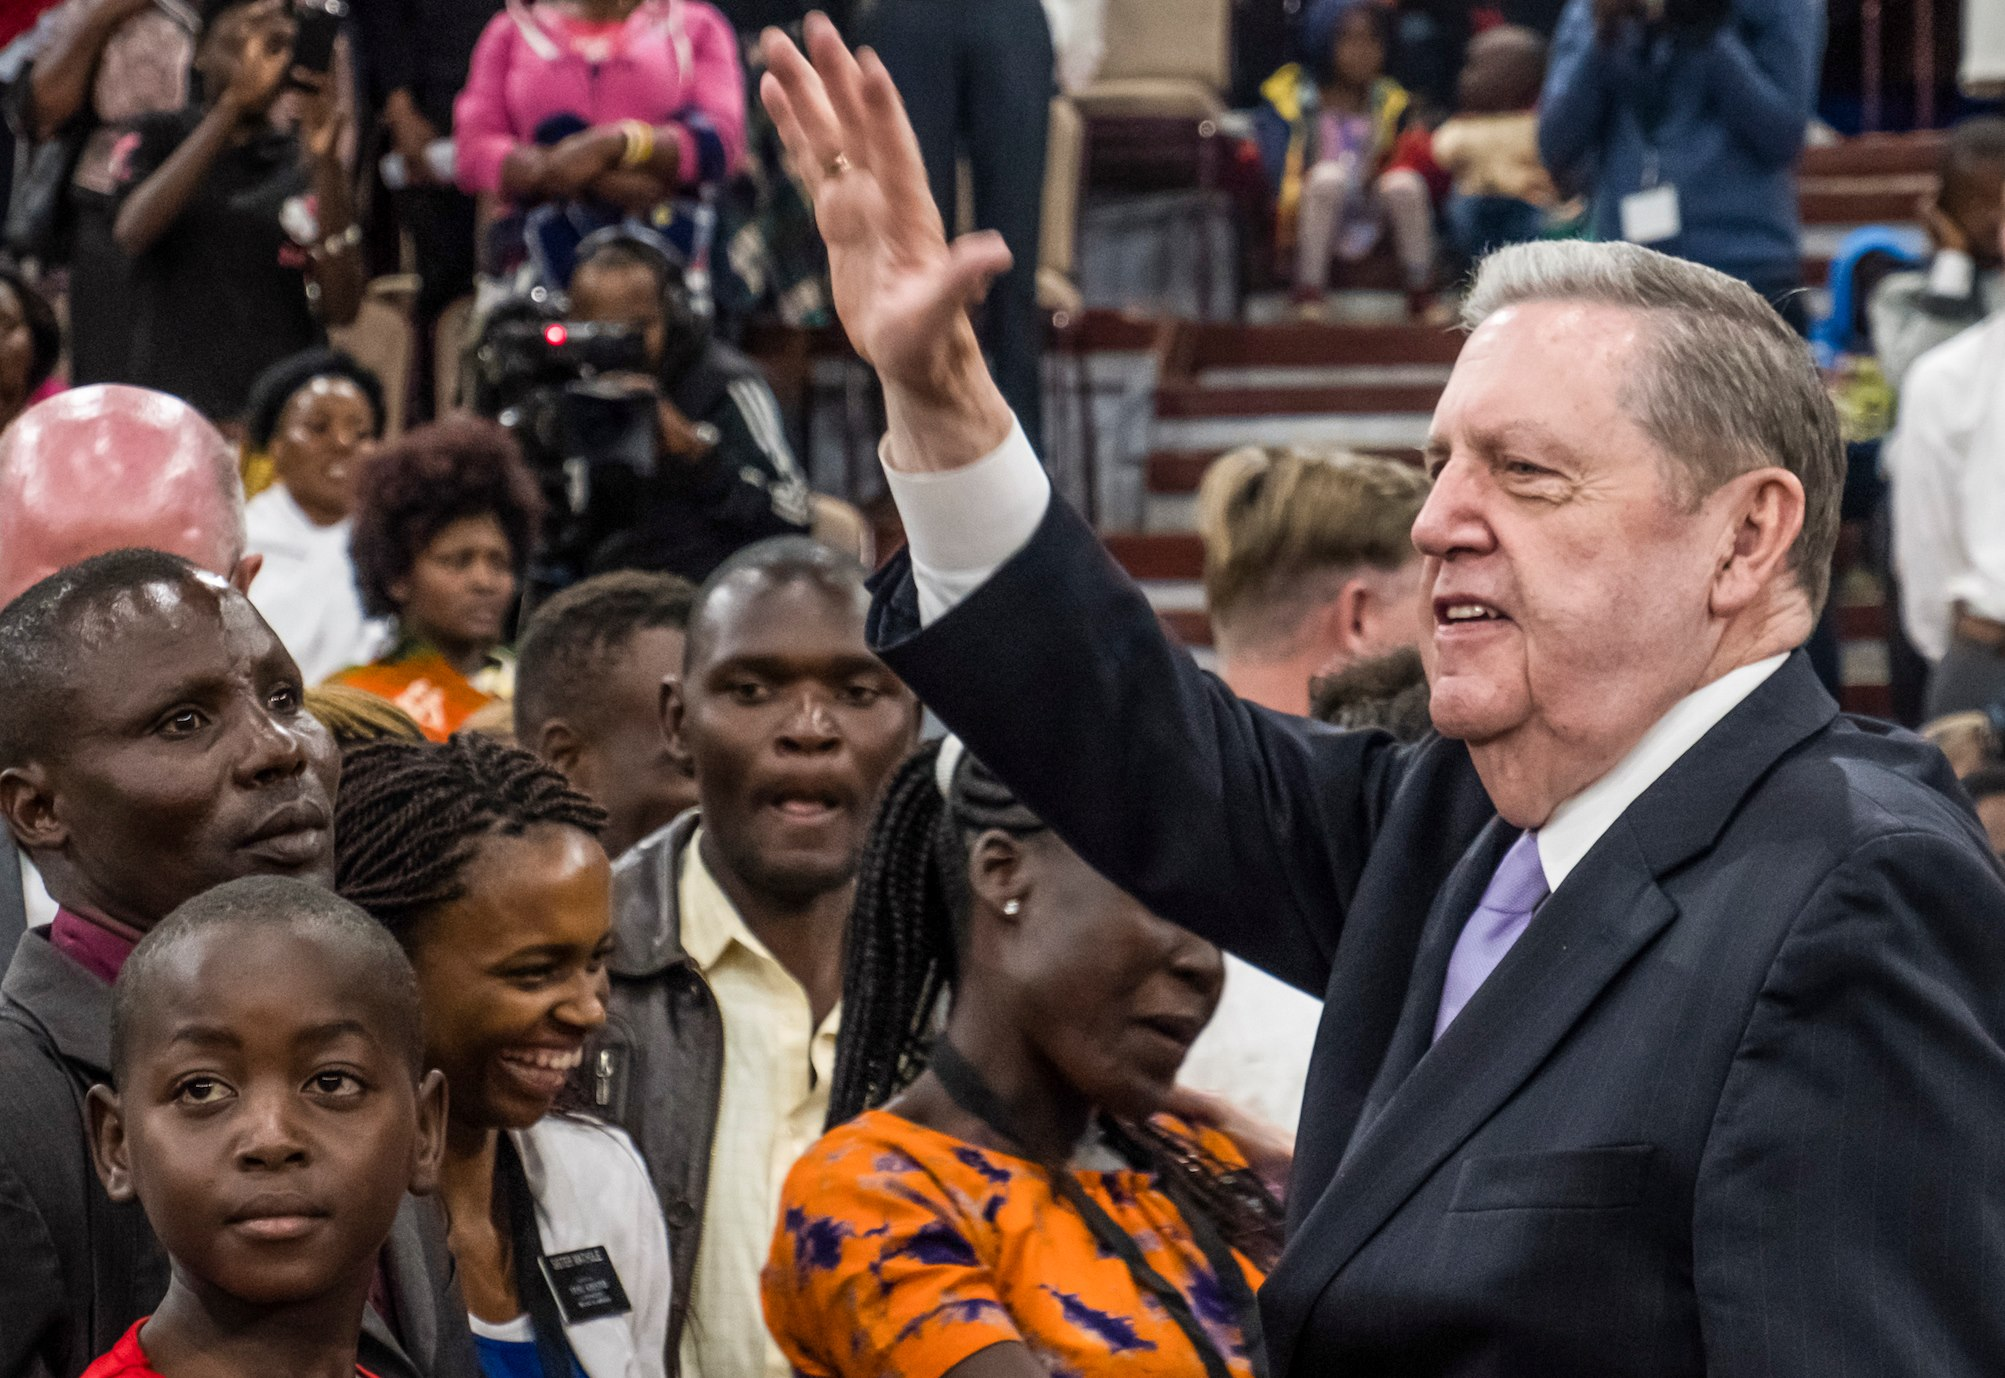 Elder Holland turns 79 years old today. Here's a look at what he's been up to this year